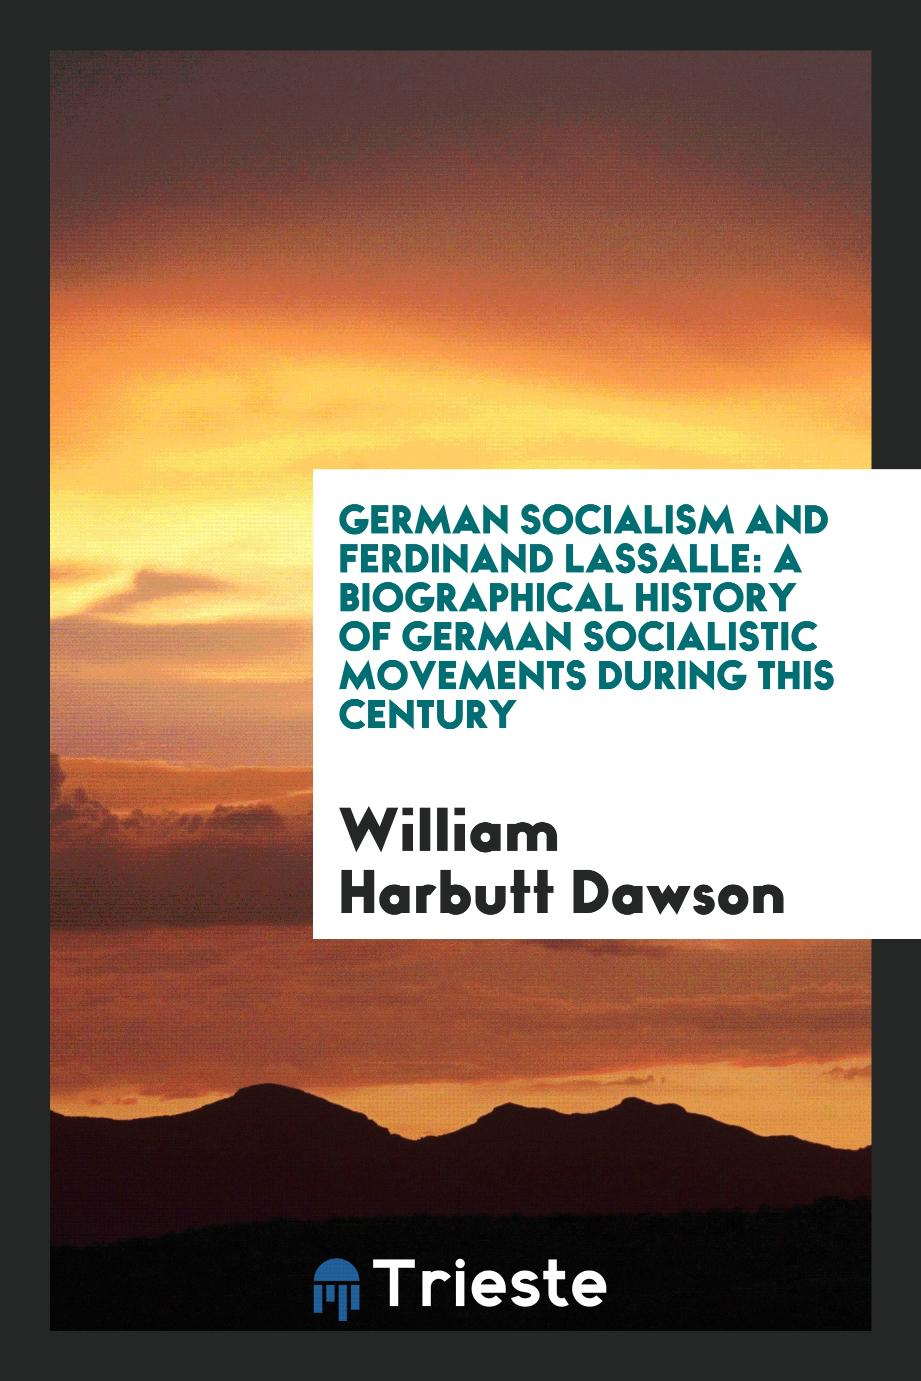 German Socialism and Ferdinand Lassalle: A Biographical History of German Socialistic Movements During This Century